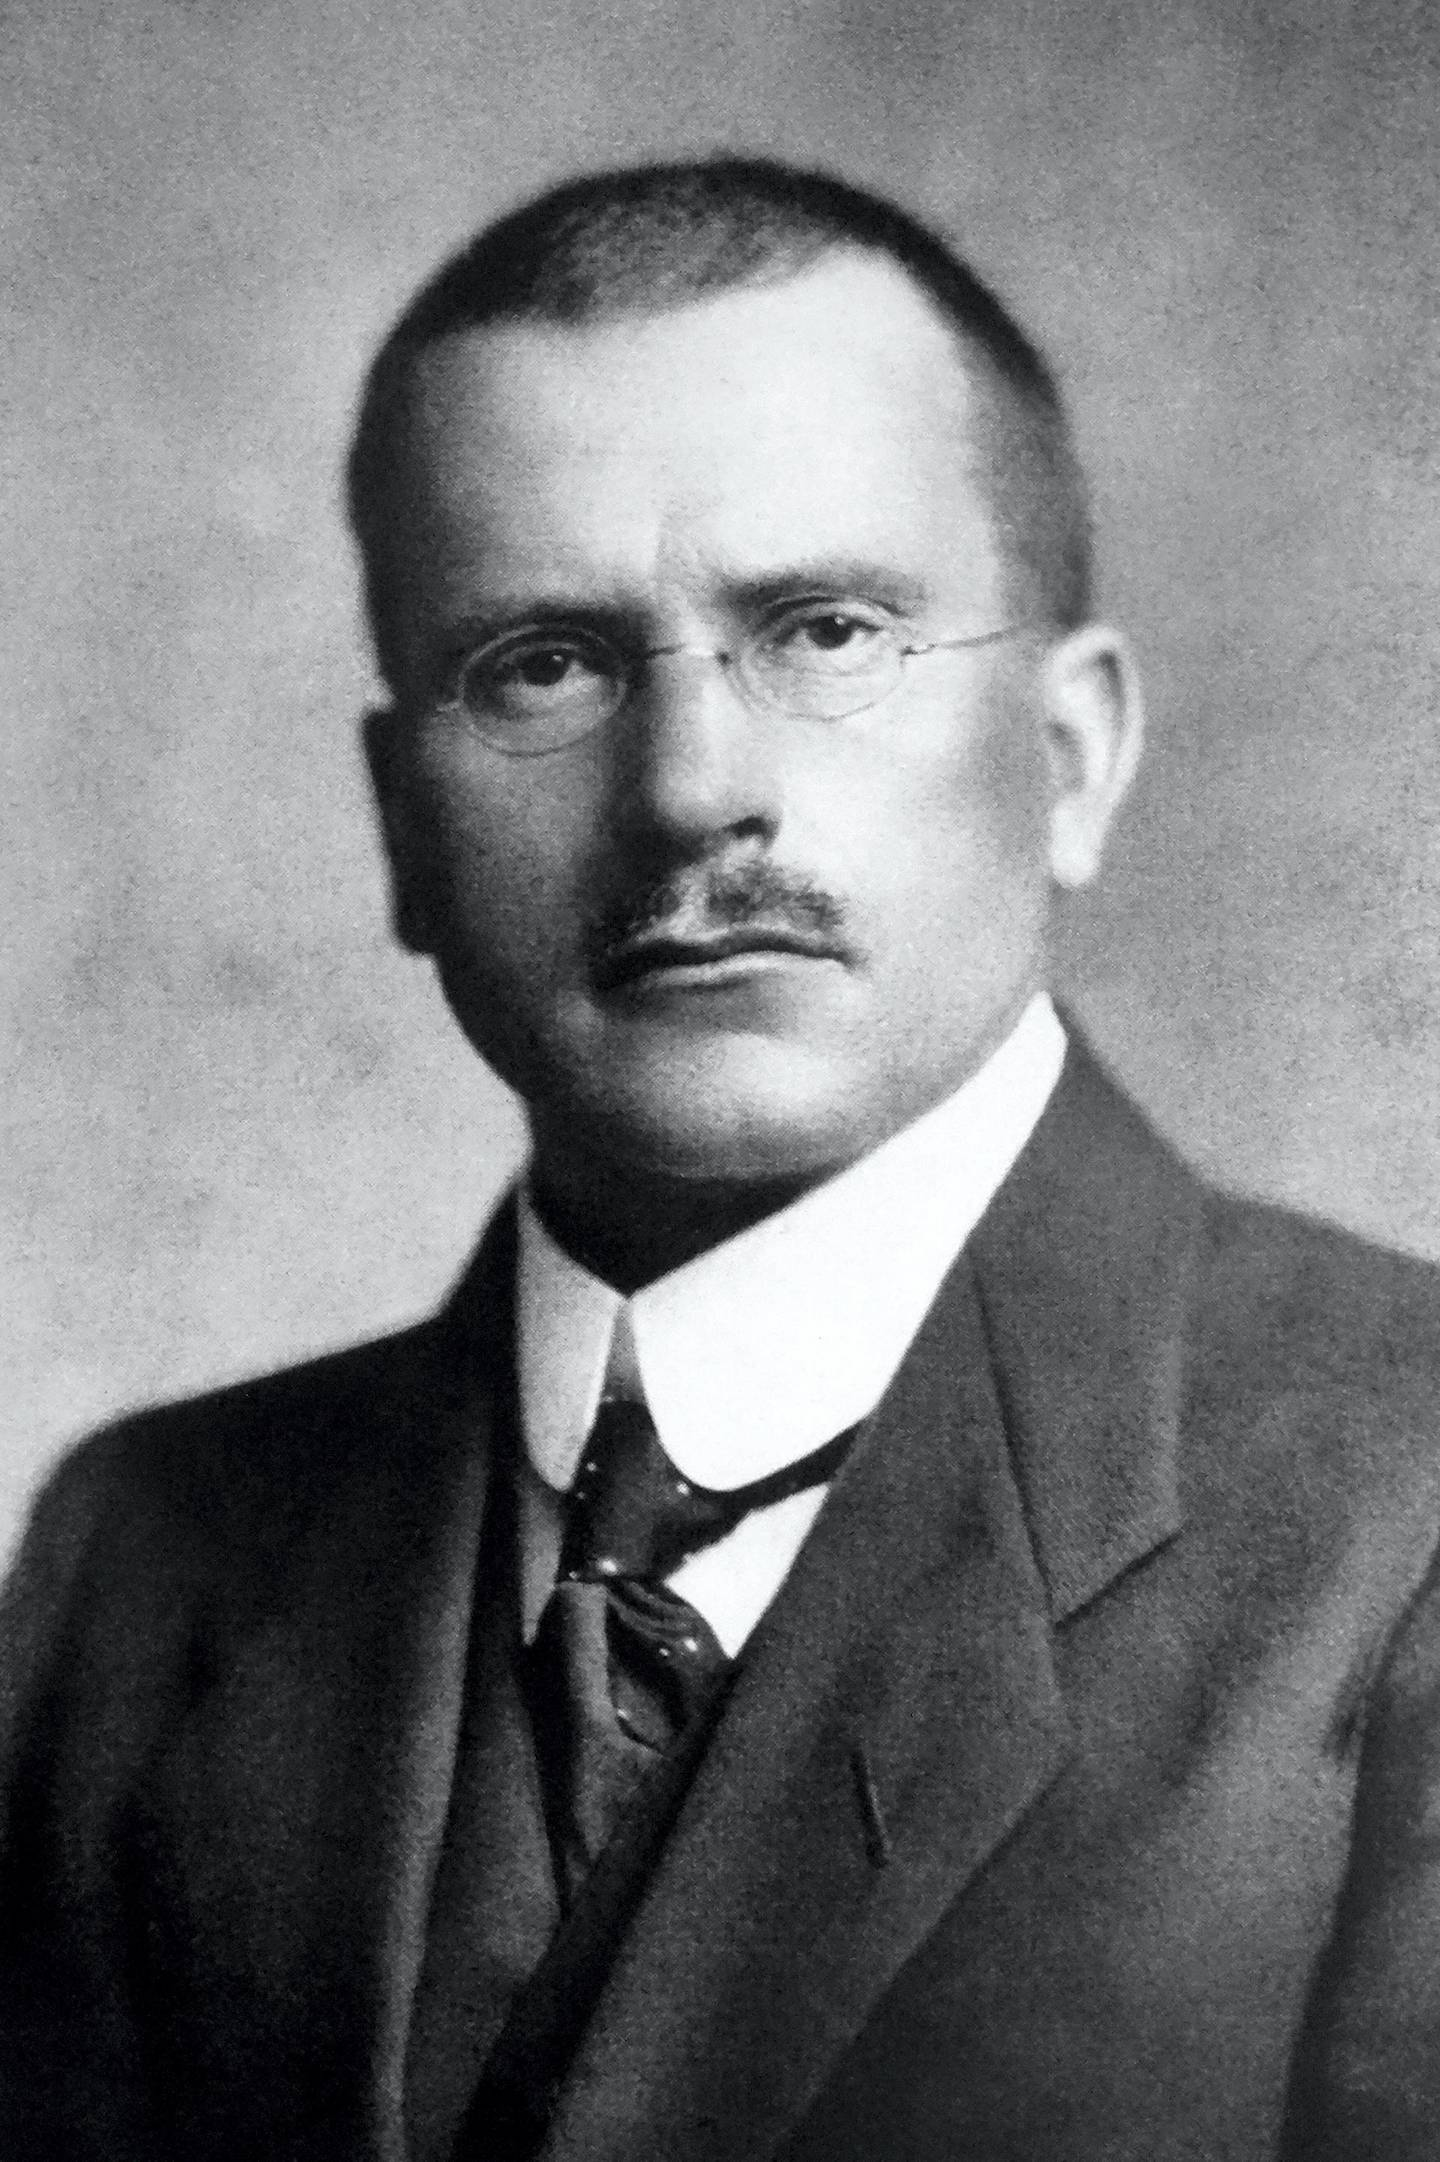 2B02RYT Carl Gustav Jung ( 26 July 1875 ? 6 June 1961) was a Swiss psychiatrist and psychotherapist who founded analytical psychology. His work has been influential not only in psychiatry but also in philosophy, anthropology, archaeology, literature, and religious studies. He was a prolific writer, though many of his works were not published until after his death.  The central concept of analytical psychology is individuation?the psychological process of integrating the opposites, including the conscious with the unconscious, while still maintaining their relative autonomy. Jung considered individuati